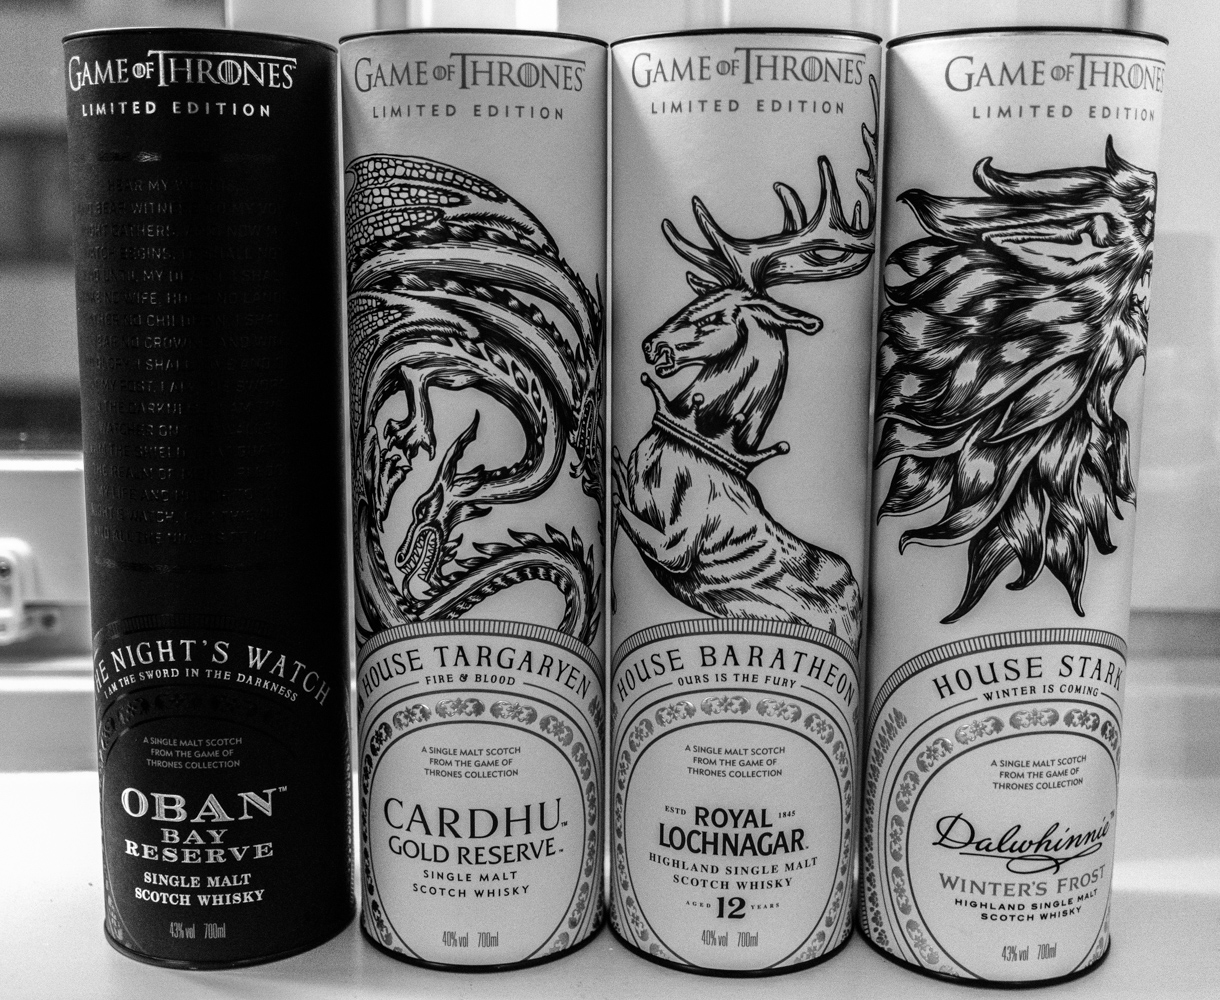 Game of thrones whisky, some of them…